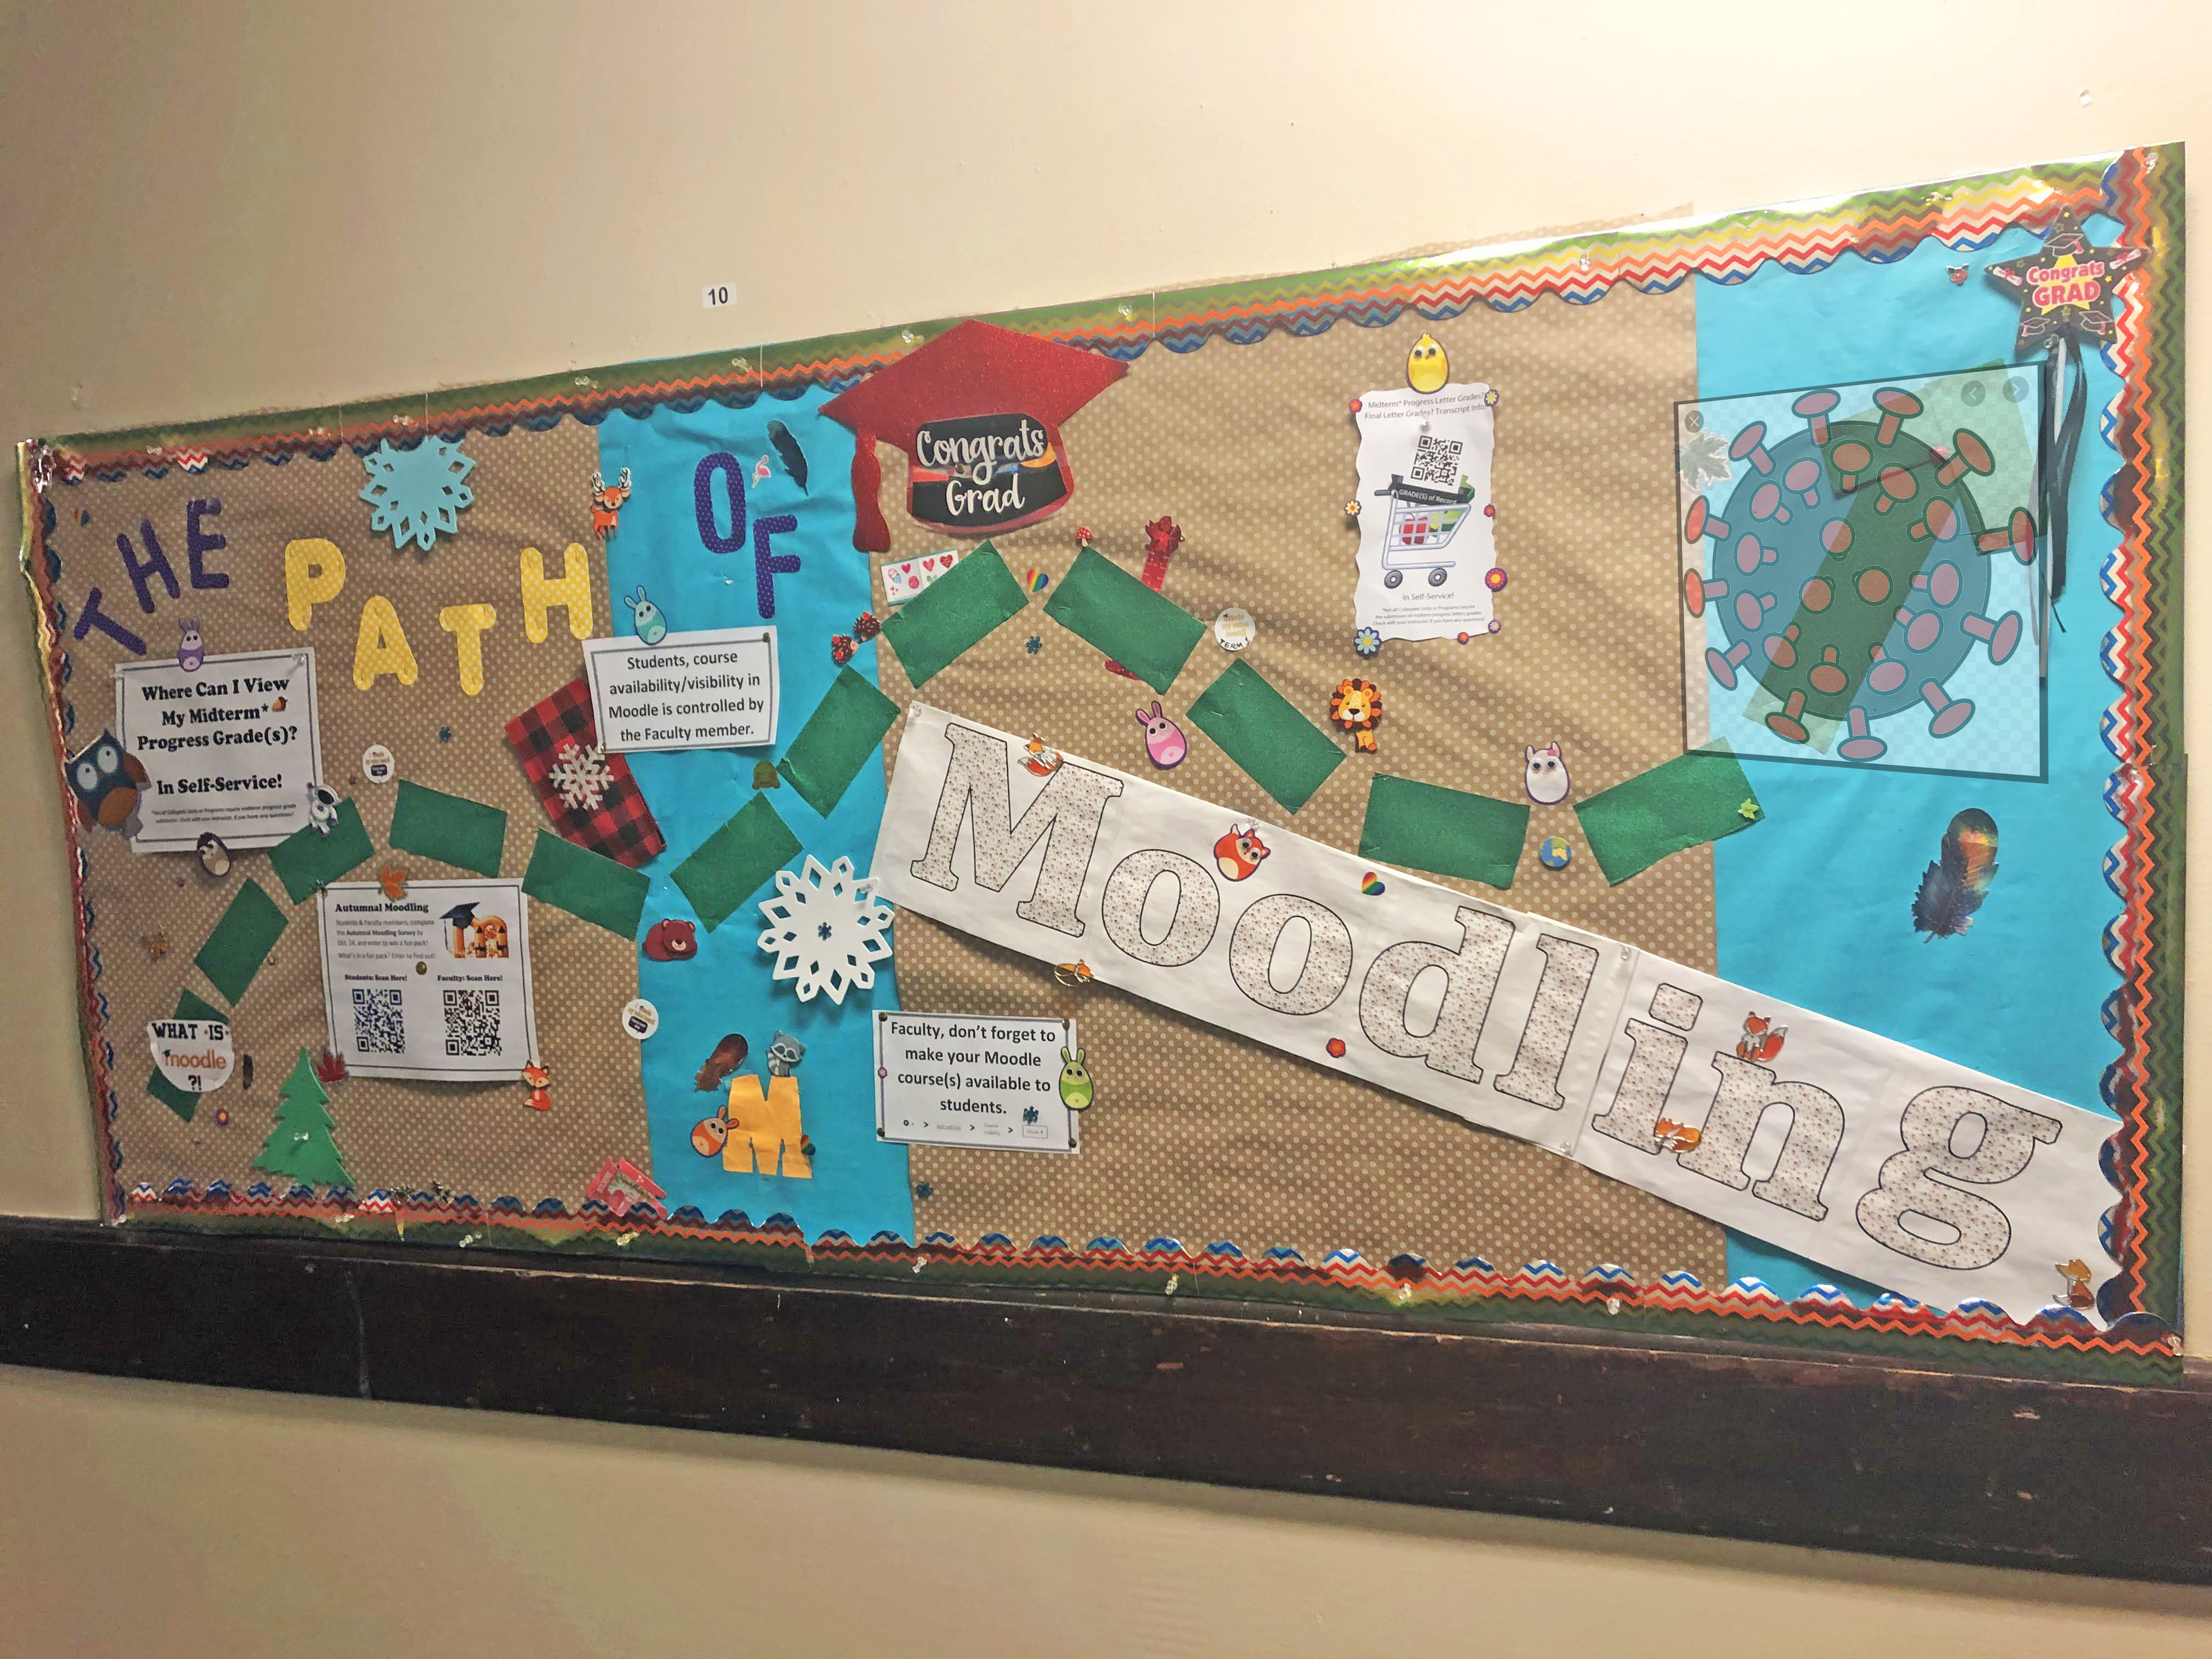 bulletin board with text 'the path to moodling' and many stickers